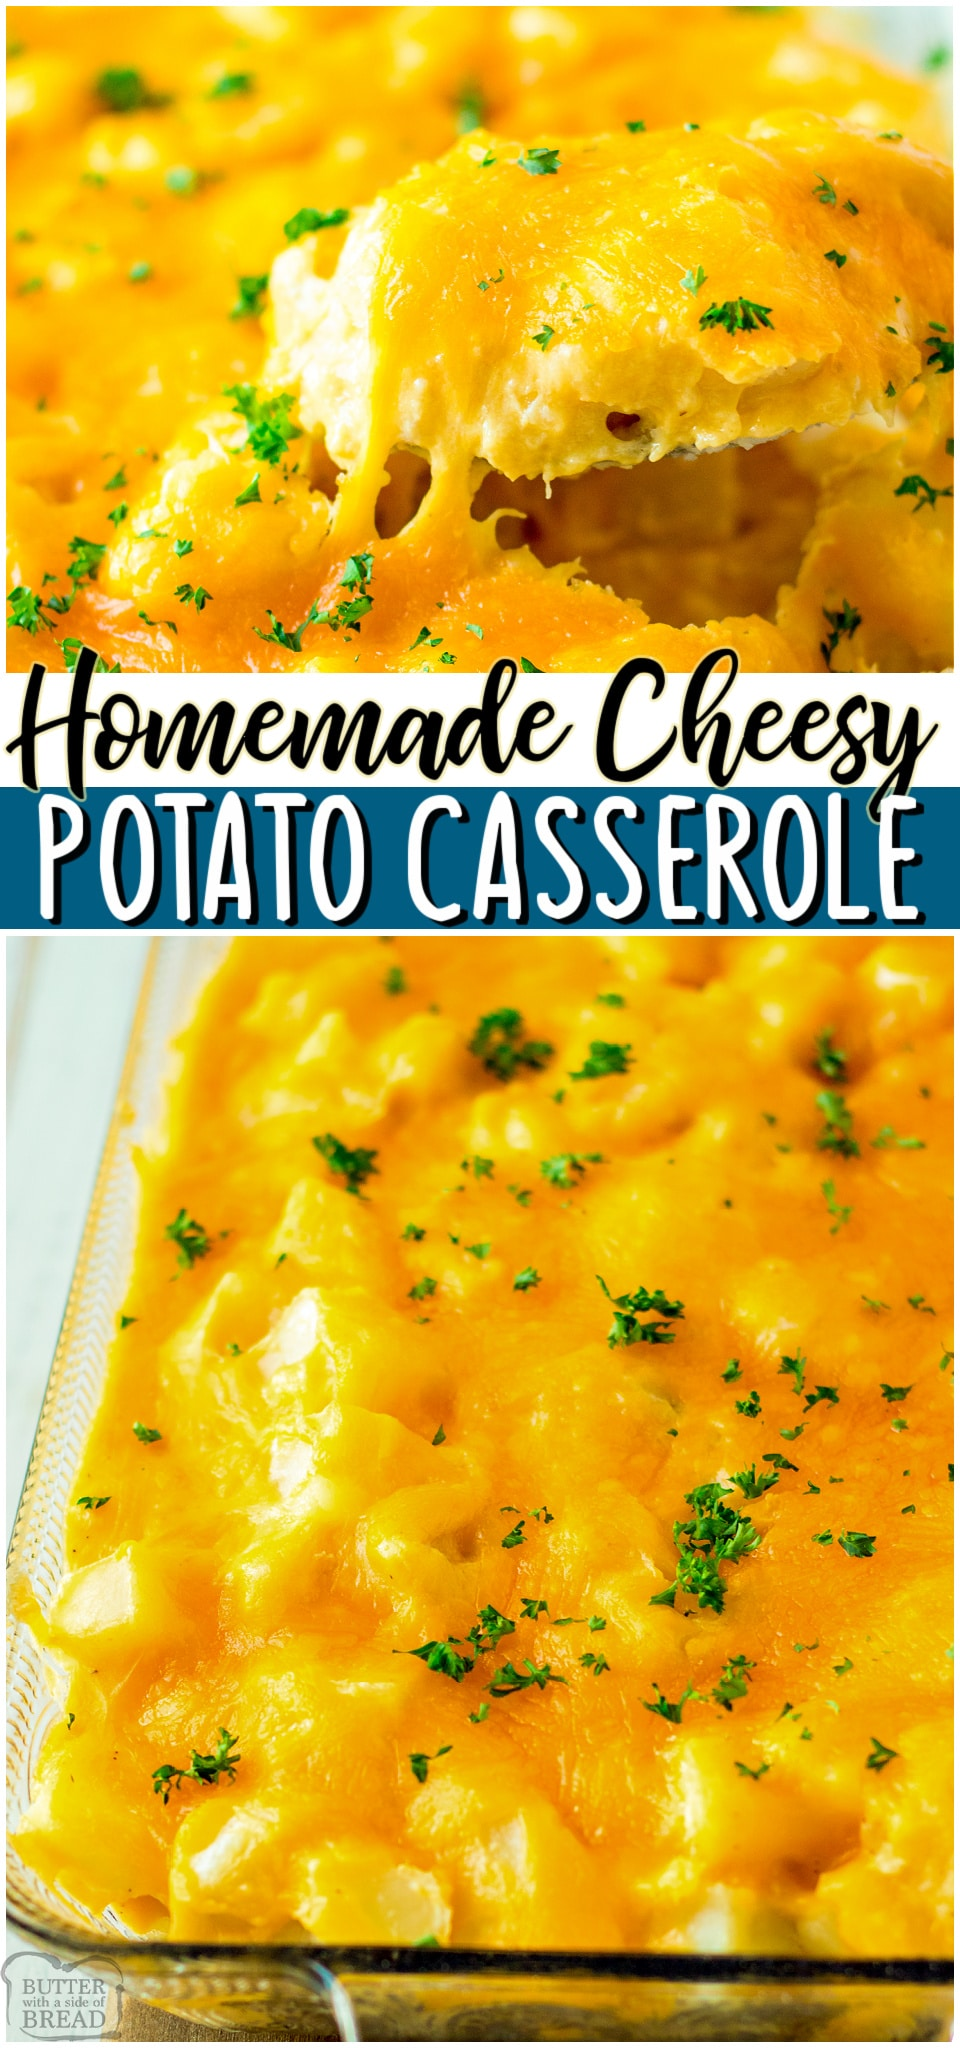 Creamy Cheesy Potato Casserole made with russet potatoes, butter, milk, flour, and cheese, giving you the perfect cheesy potatoes recipe! Homemade funeral potatoes perfect for holidays, Sunday dinner, or any occasion. #cheese #potatoes #casserole #bake #comfort #easyrecipe from BUTTER WITH A SIDE OF BREAD